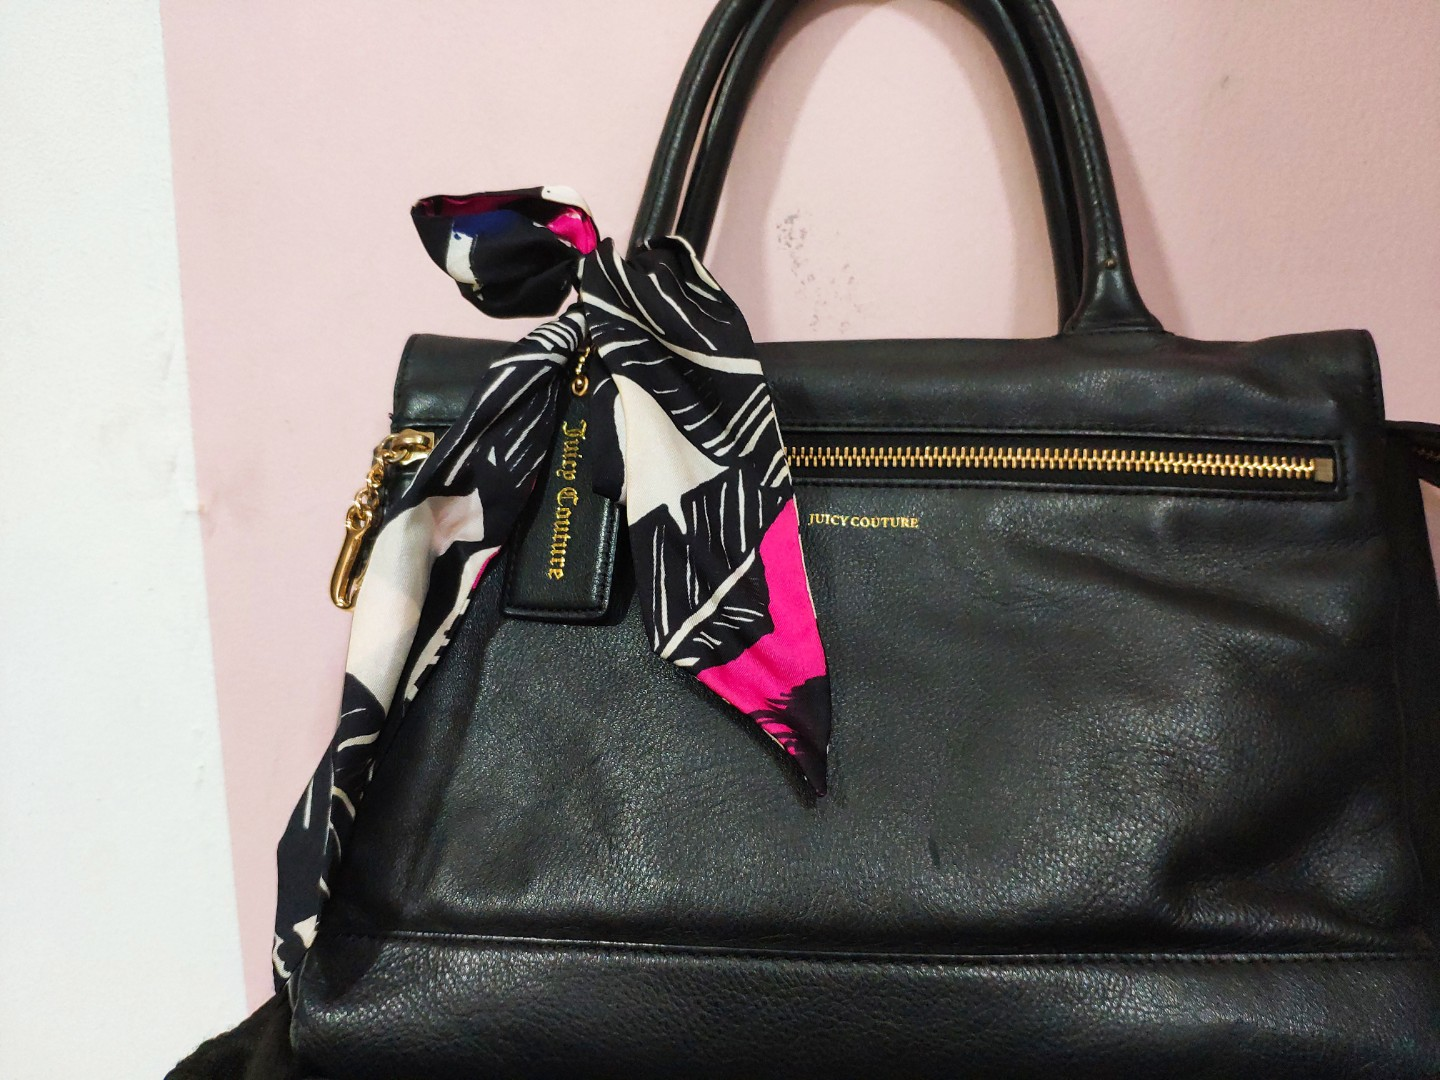 Authentic Juicy Couture Leather Handbag Luxury Bags Wallets Handbags On Carou